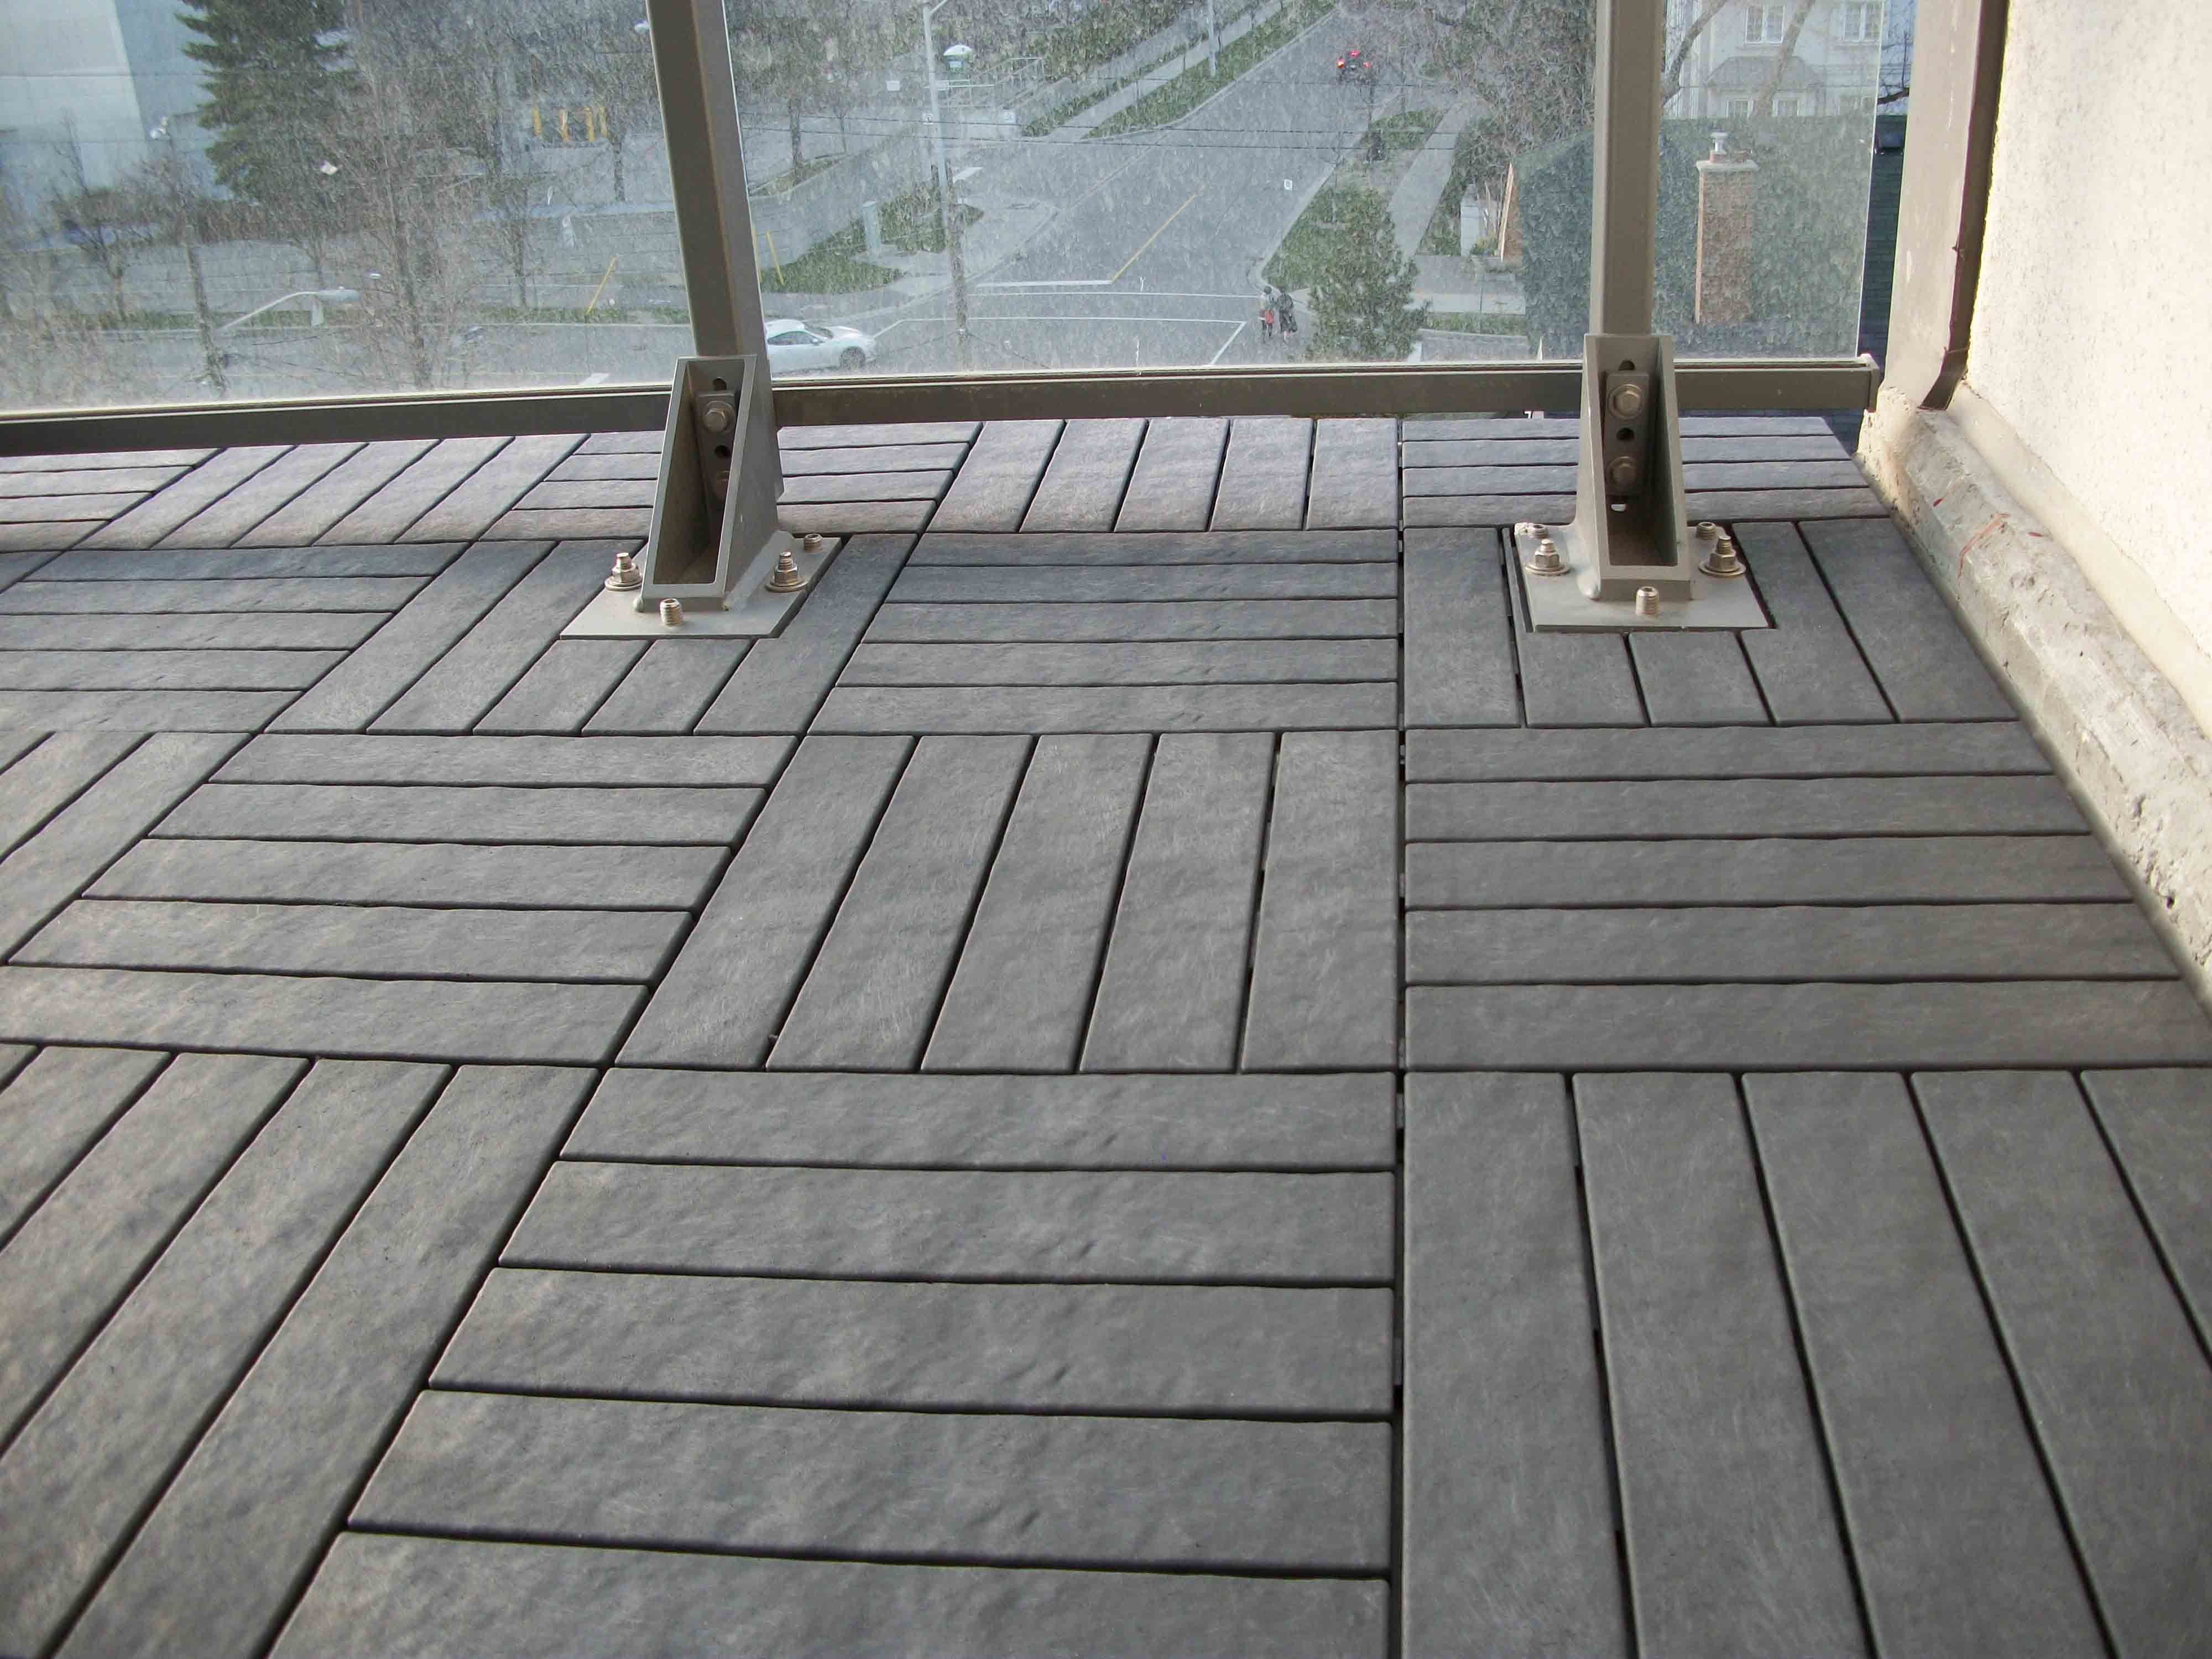 Charcoal grey floor decking tiles on balcony floor we supply and charcoal grey floor decking tiles on balcony floor we supply and install better dailygadgetfo Gallery